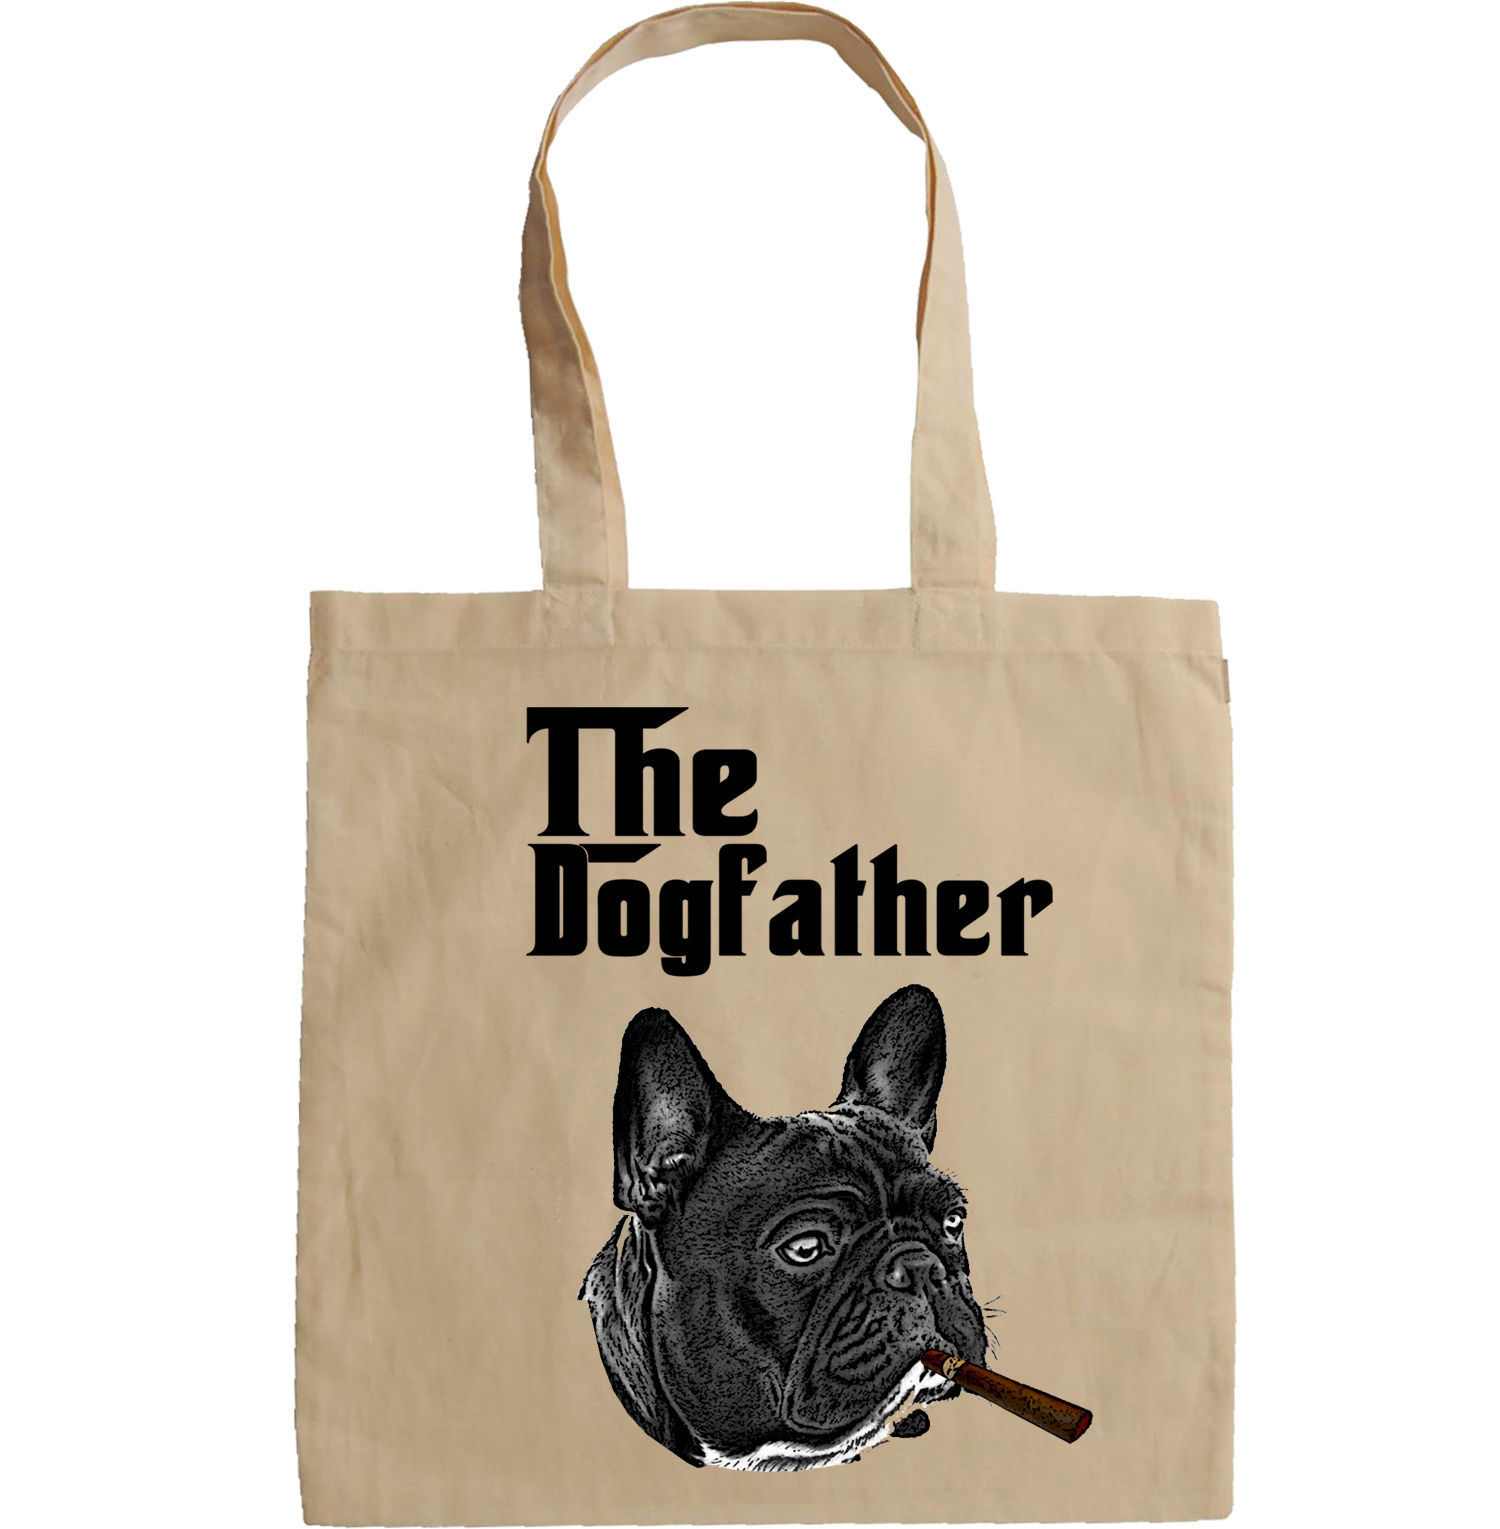 FRENCH BULLDOG THE GODFATHER - NEW AMAZING GRAPHIC HAND BAG/TOTE BAG